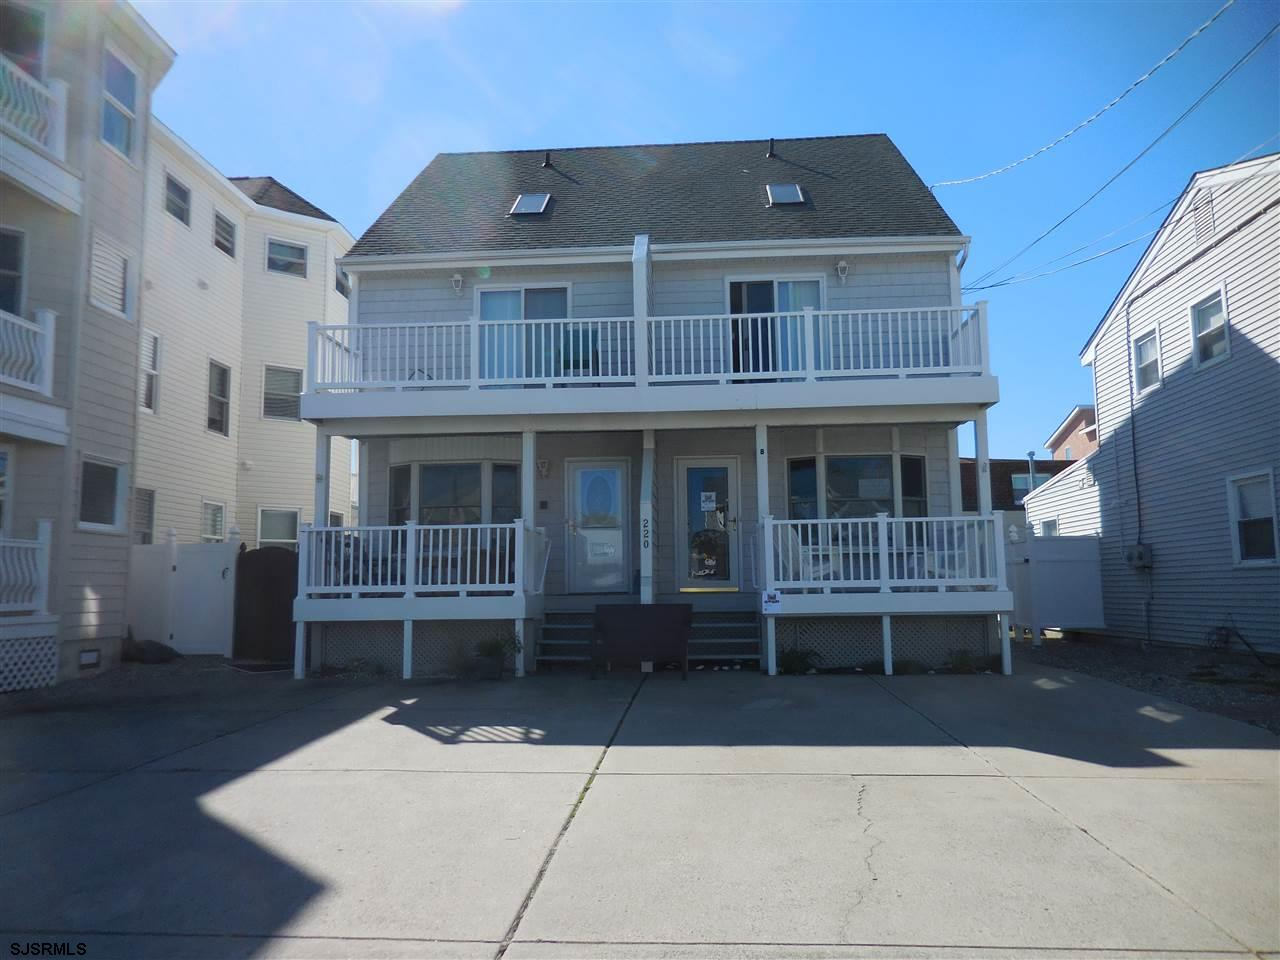 220 4th St. N., Brigantine, NJ 08203